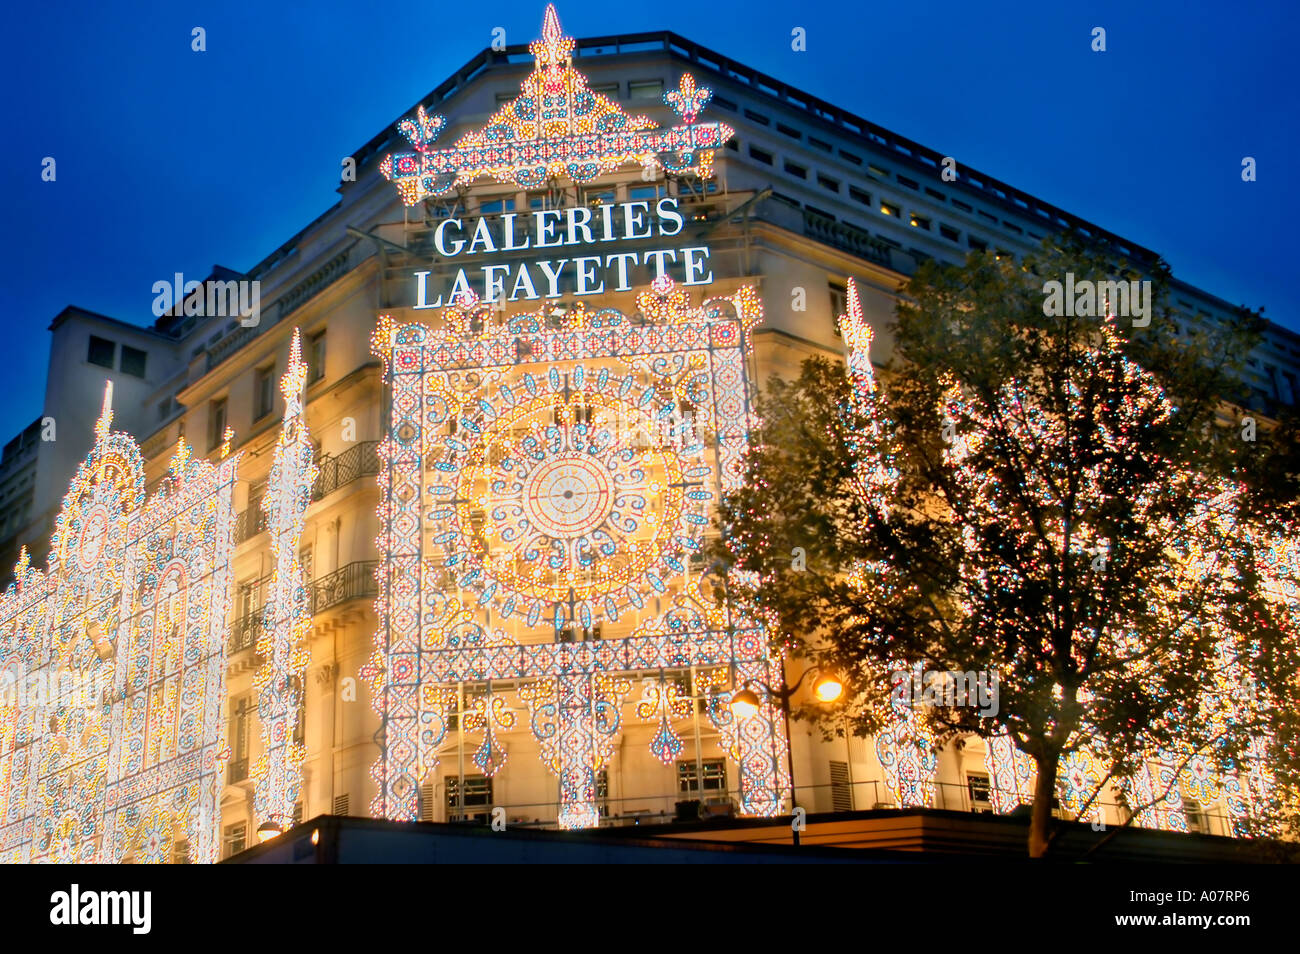 paris galeries lafayette exterior stockfotos paris galeries lafayette exterior bilder alamy. Black Bedroom Furniture Sets. Home Design Ideas